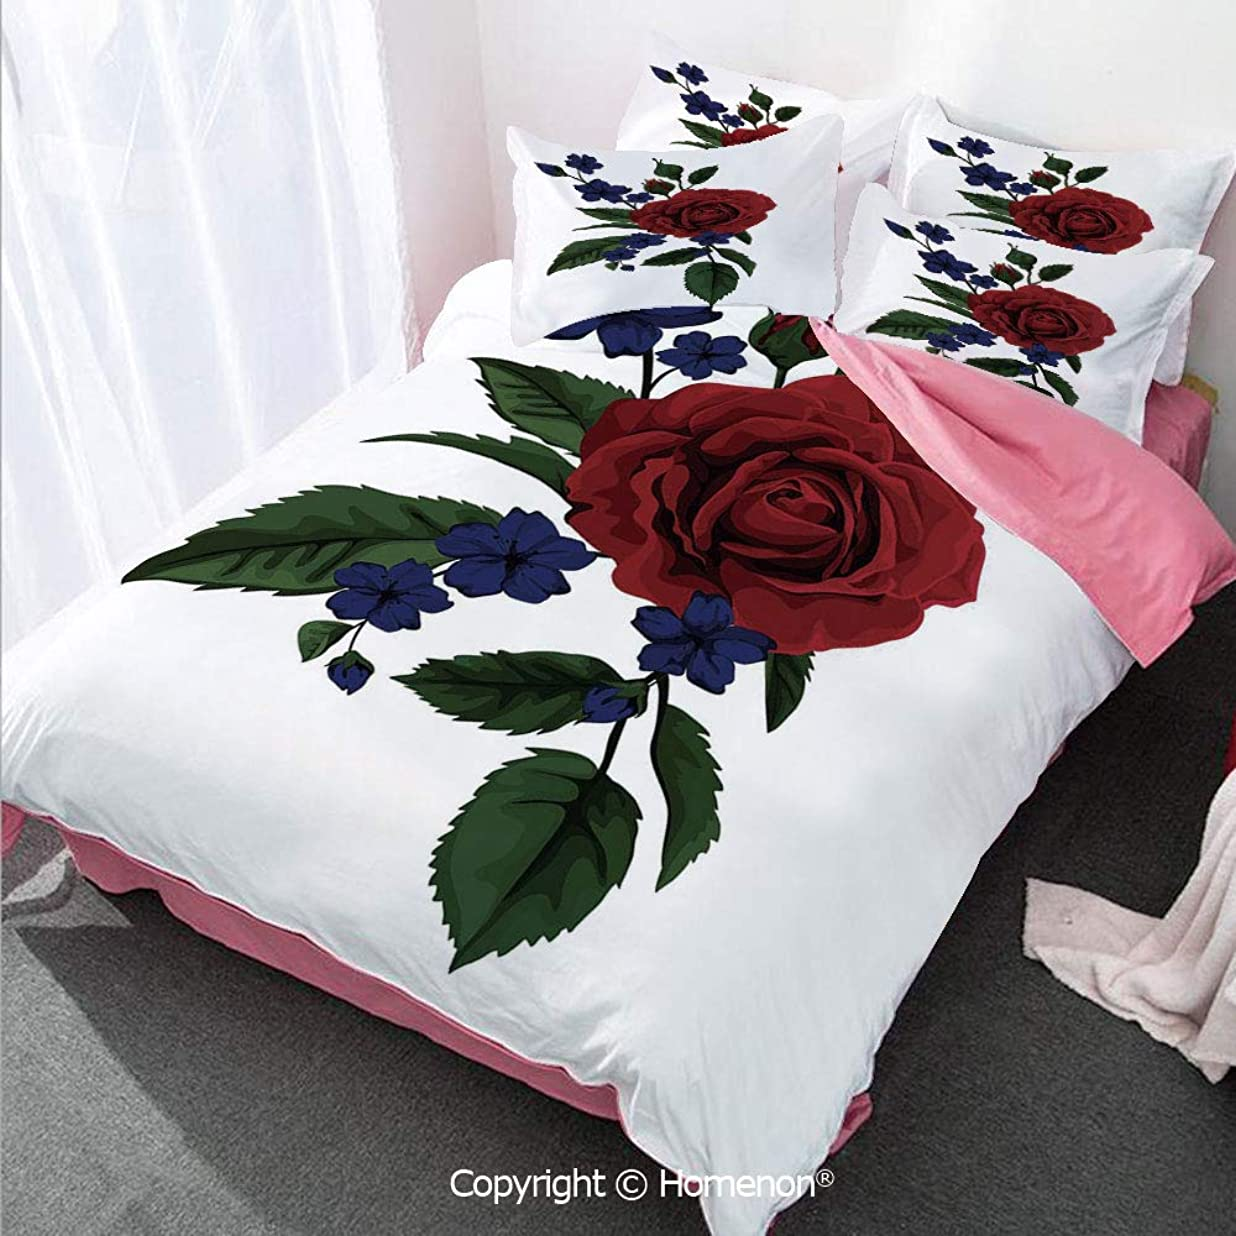 Rose Girl's Room Duvet Cover Set Twin Size,Rosebud with Little Blossoms Leaves Love and Passion Theme A,Decorative 3 Piece Bedding Set with 2 Pillow Shams Ruby Violet Blue Hunter Green rneomdog6